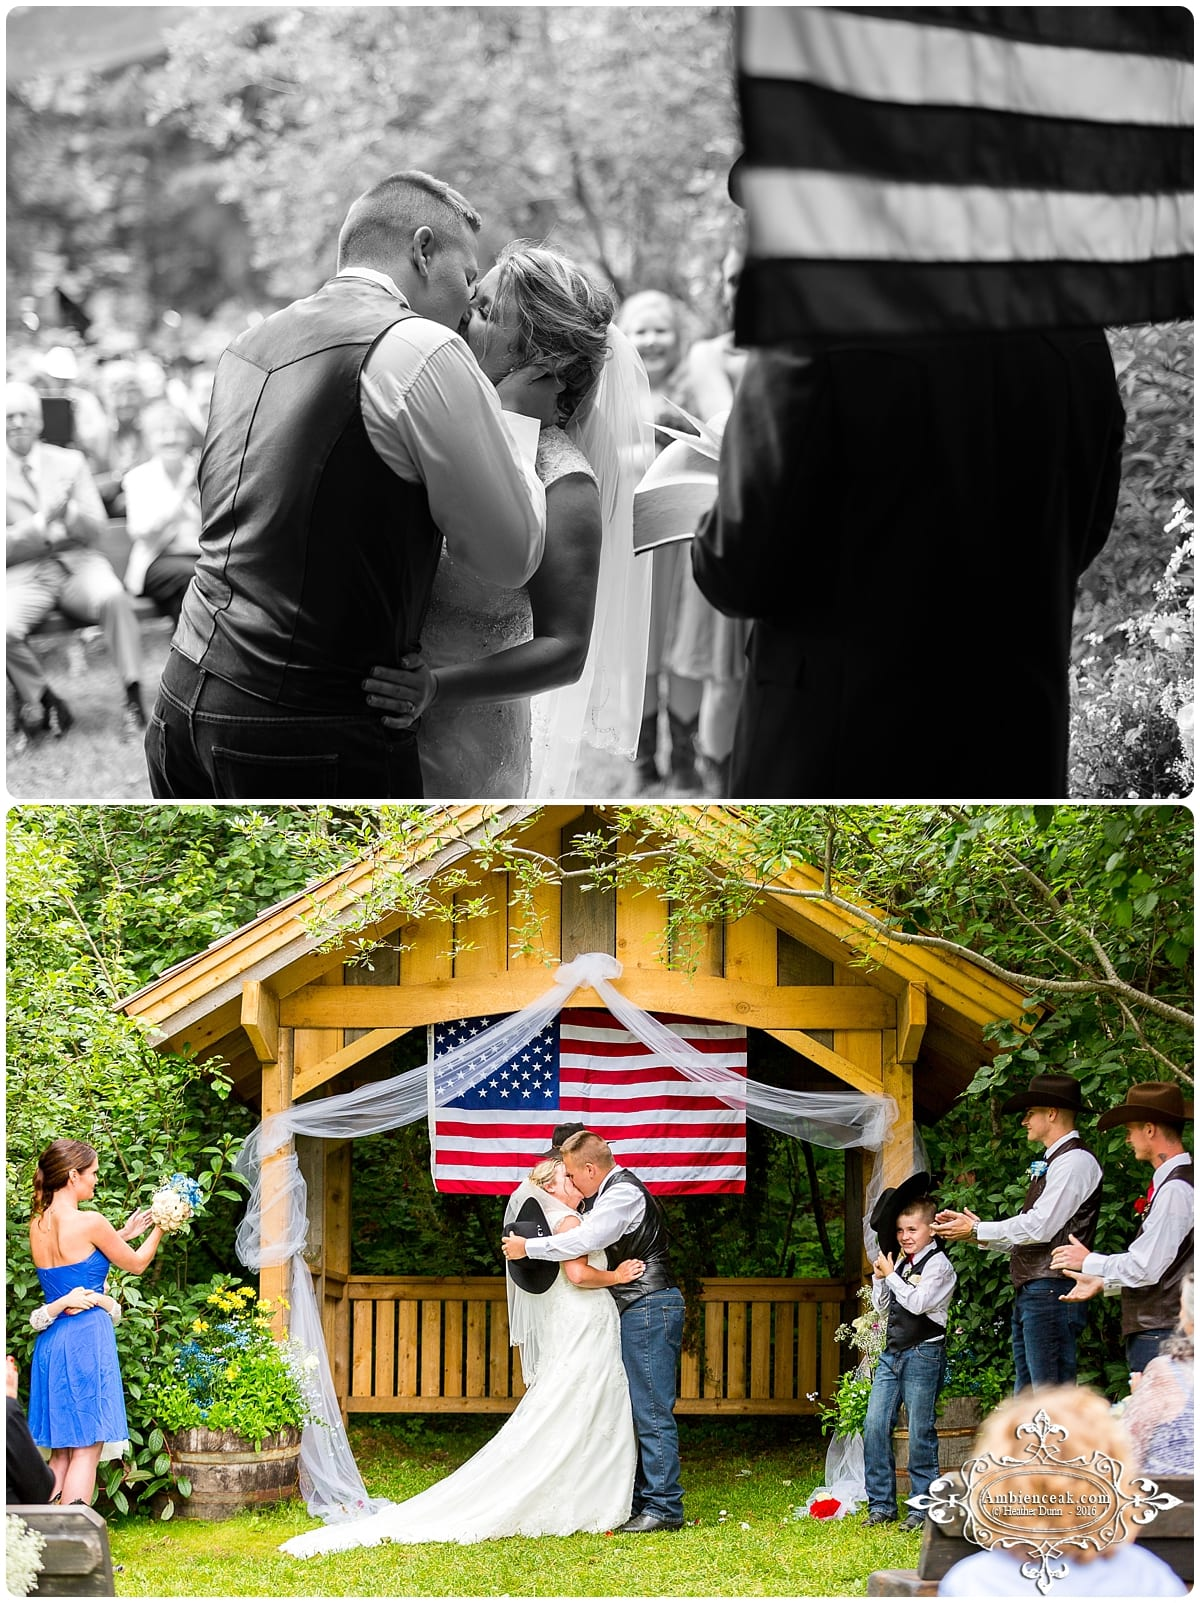 Ambience Photography,Black and White,Ceremony,Heather Dunn,Photography in Alaska,Reception,Wasilla Alaska,